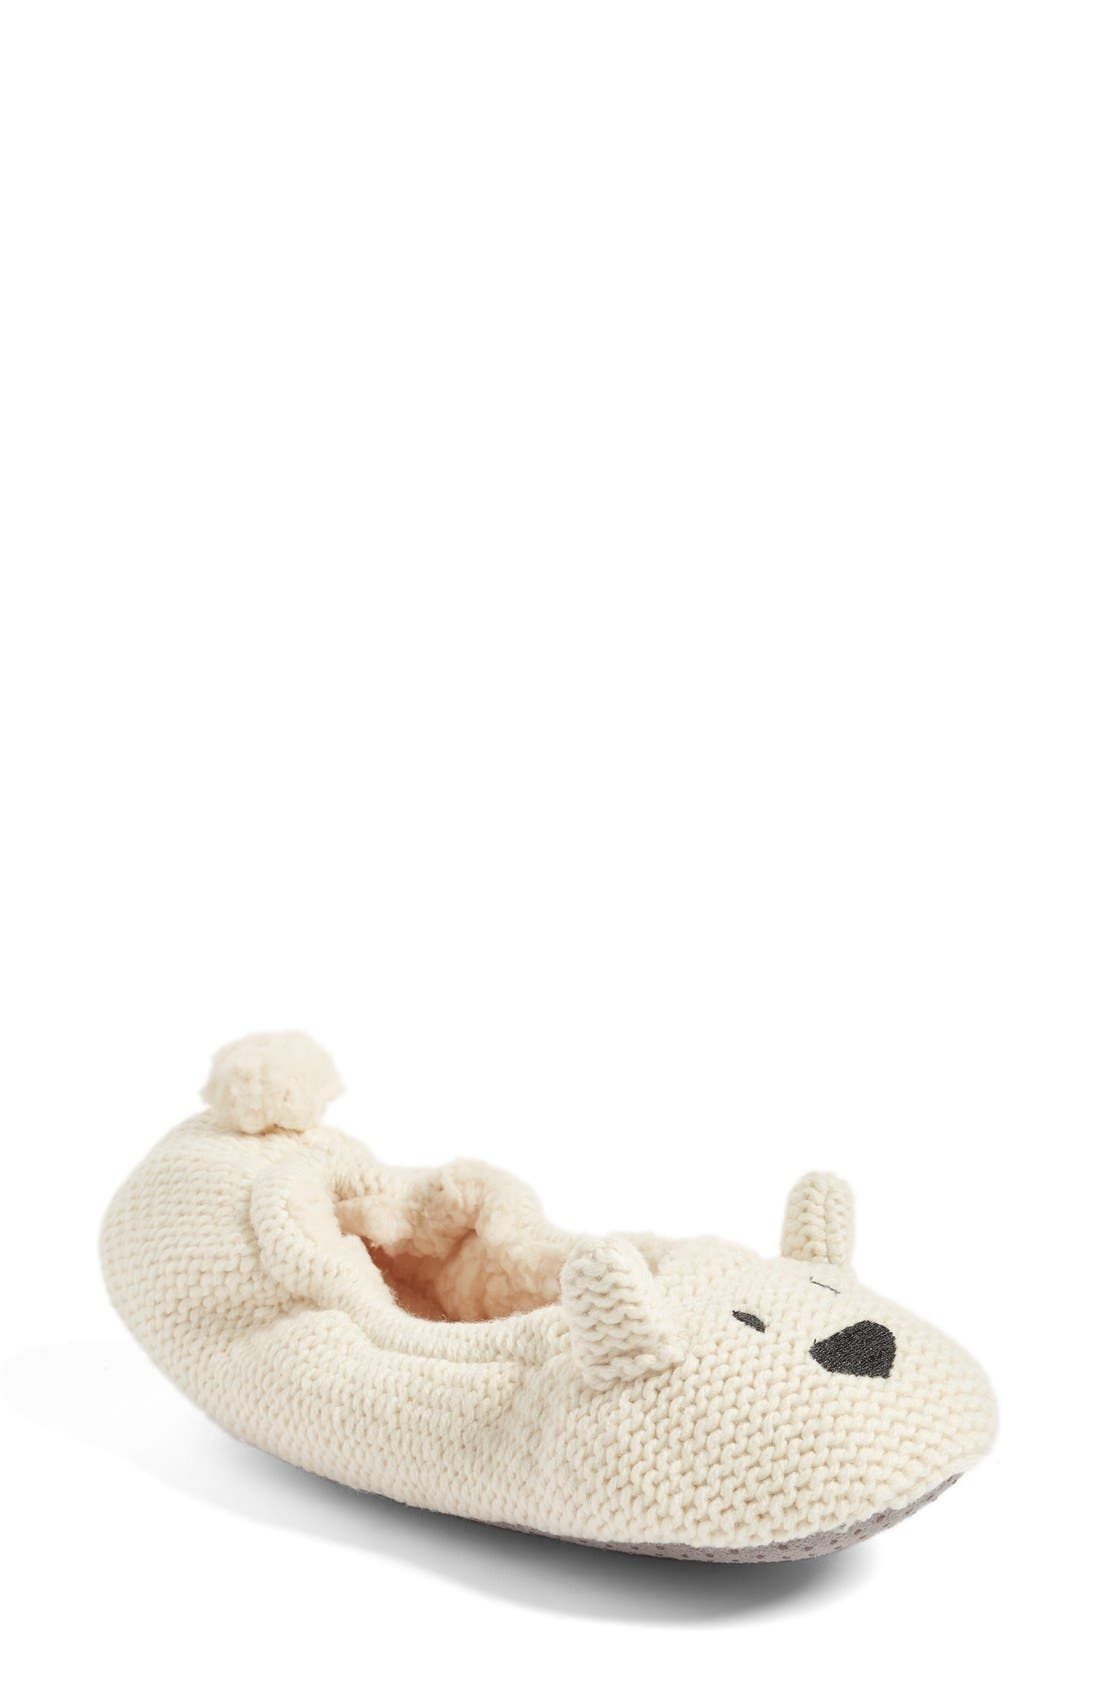 Alternate Image 1 Selected - Nordstrom 'Critter' Slipper (Women)